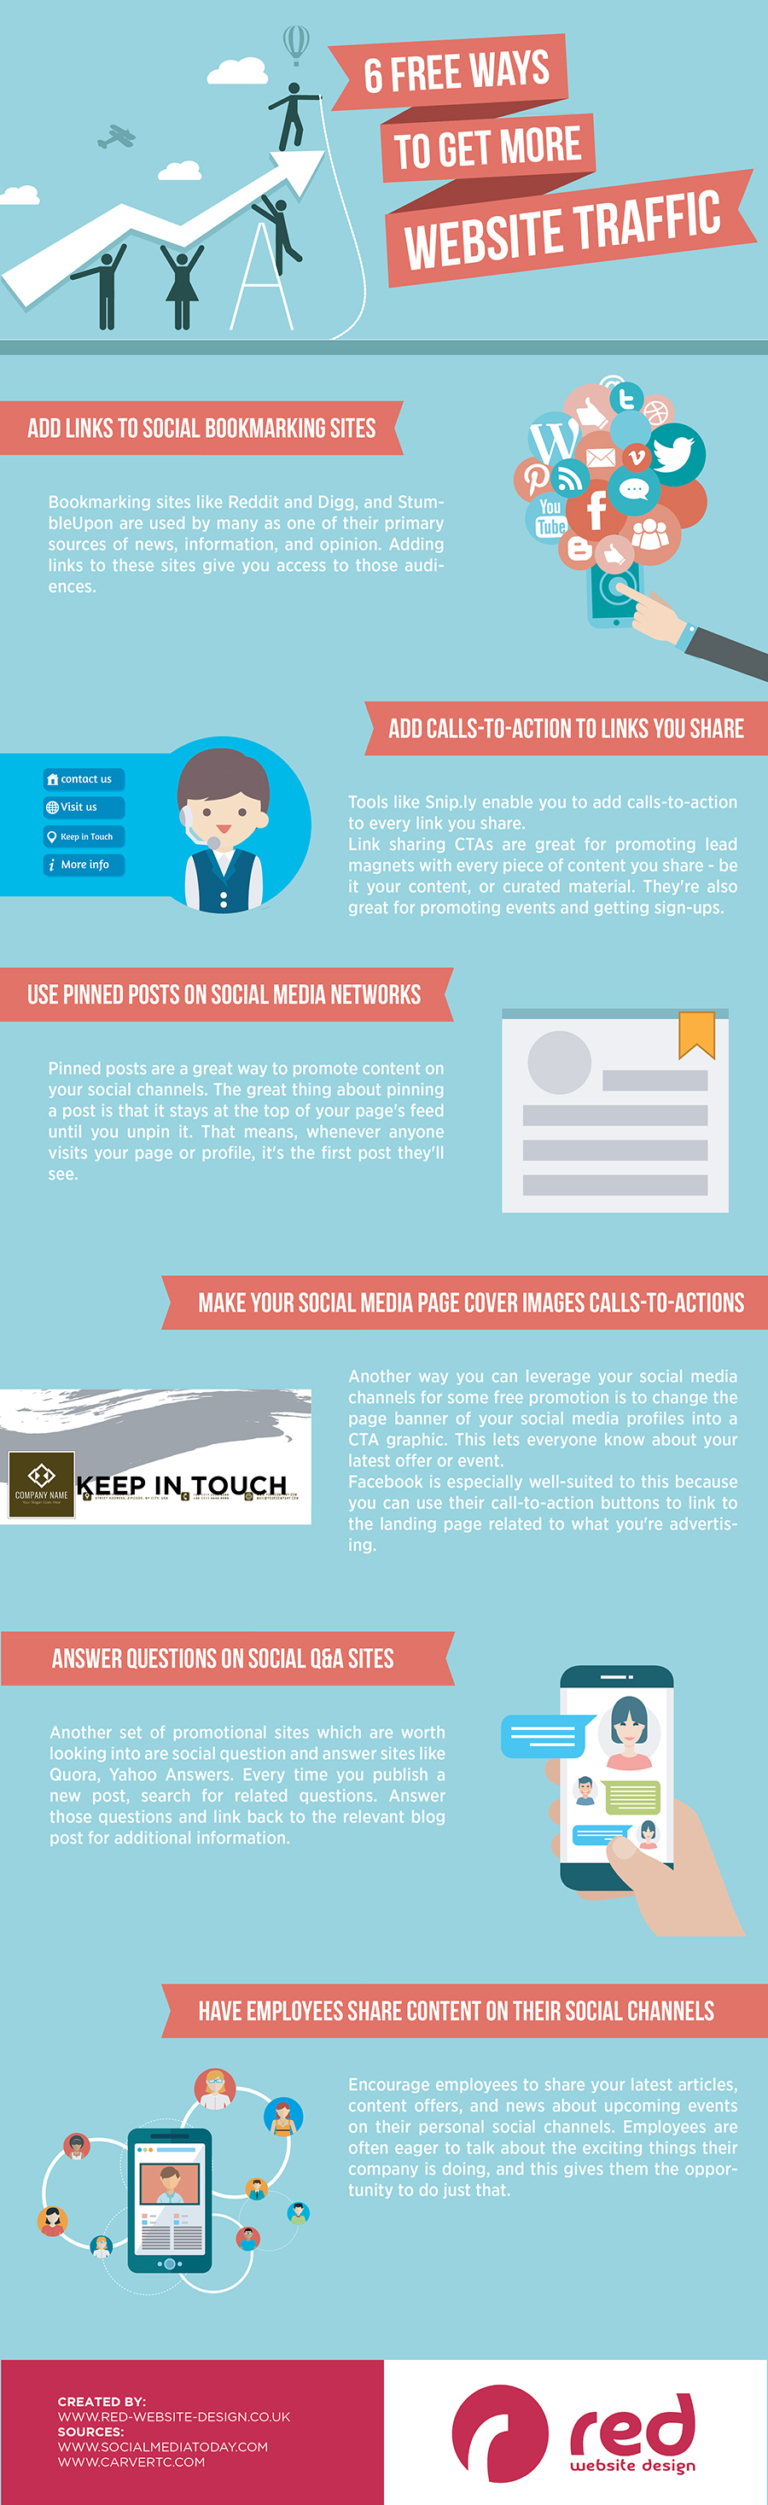 6 ways to get traffic infographic